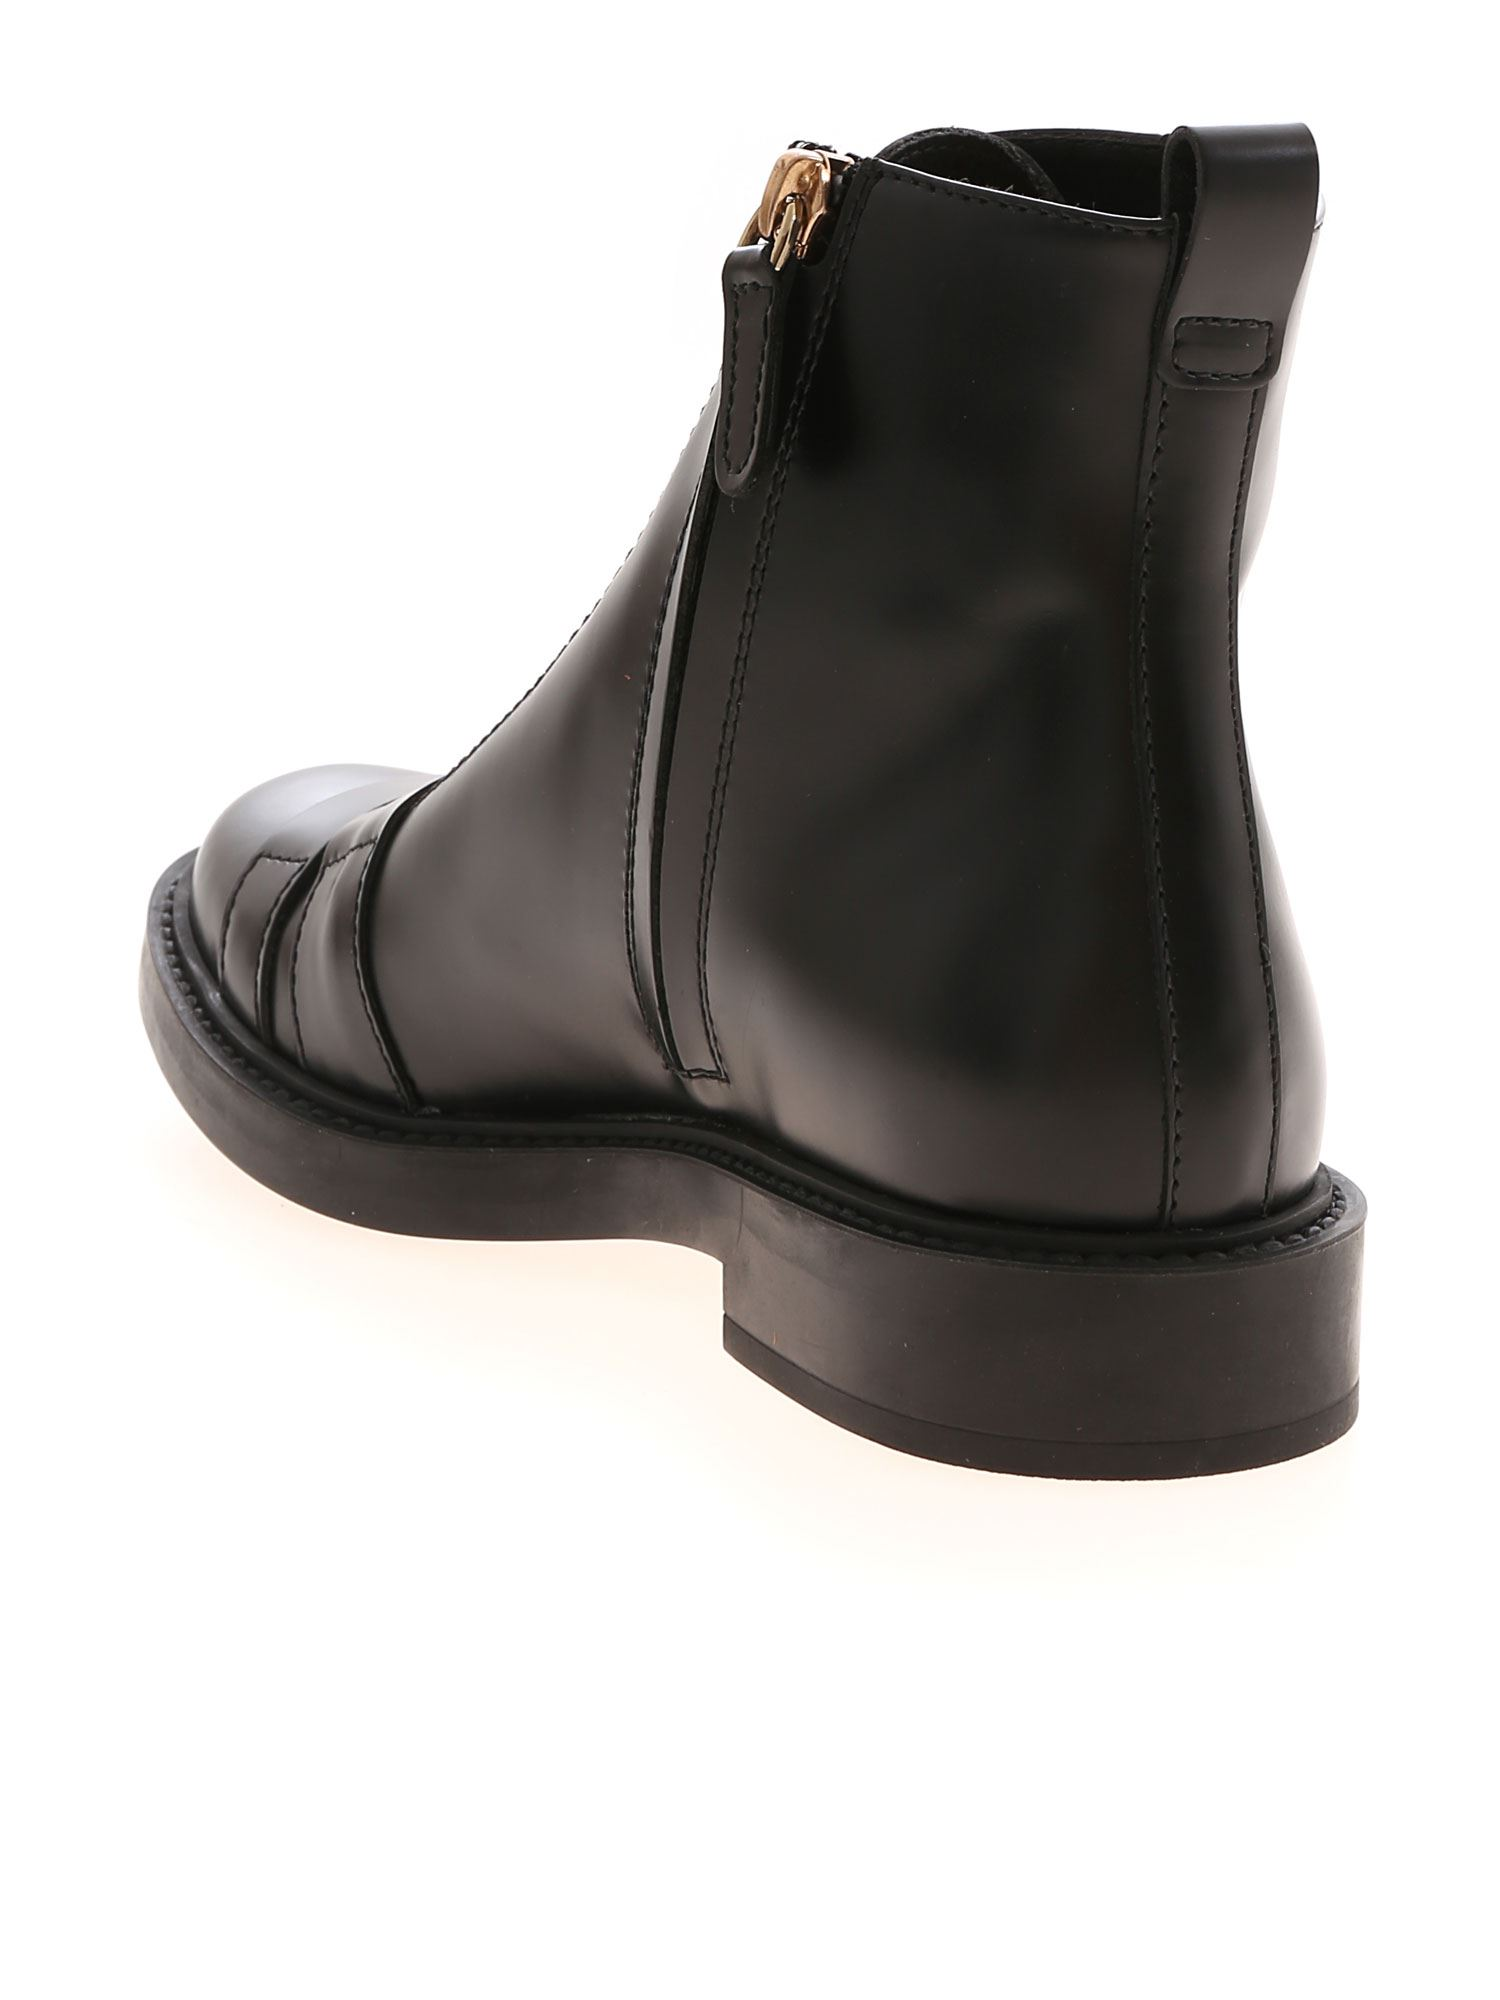 LOW BLACK ANKLE BOOTS FEATURING GOLDEN BUCKLES TOD